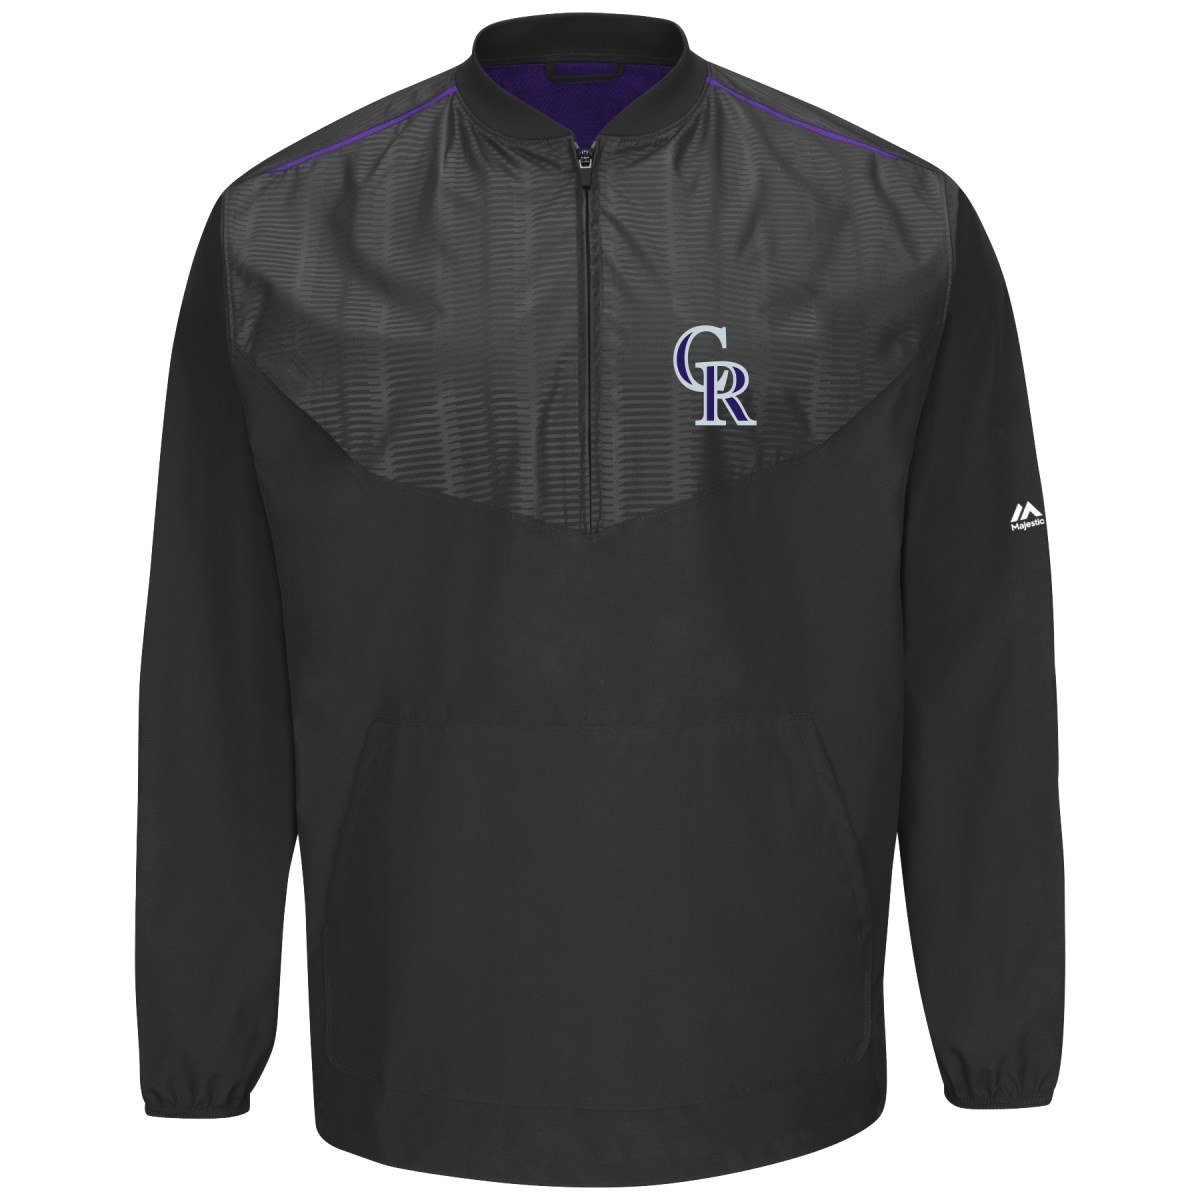 Colorado Rockies Majestic MLB Authentic Cool Base On-Field Training Jacket